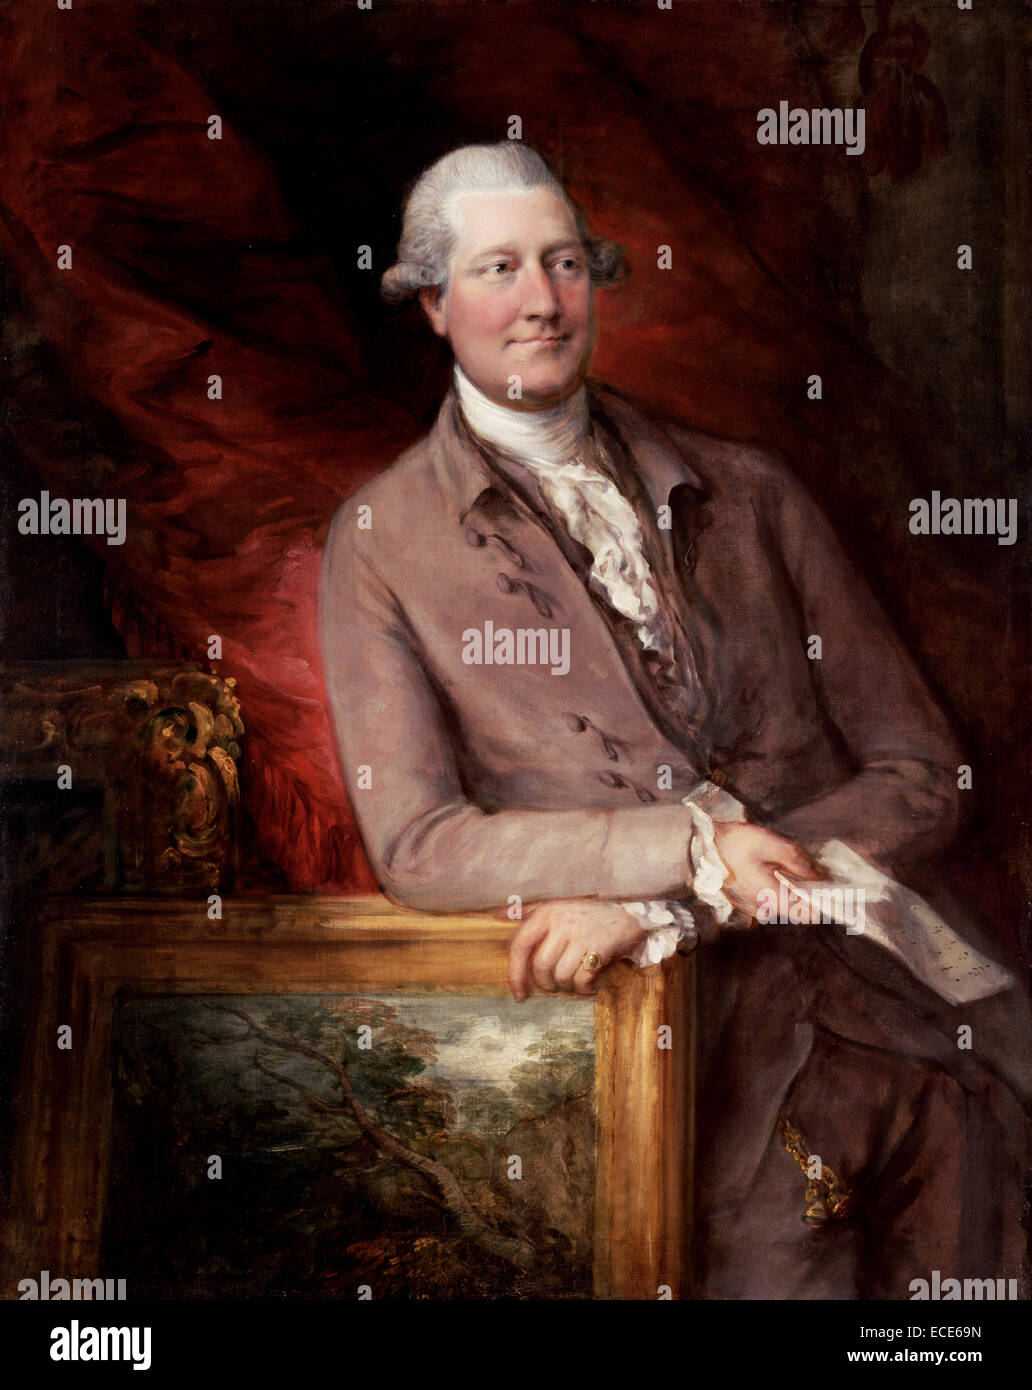 Portrait of James Christie (1730 - 1803) by Thomas Gainsborough, English, 1727 - 1788; 1778; Oil on canvas; Unframed: - Stock Image